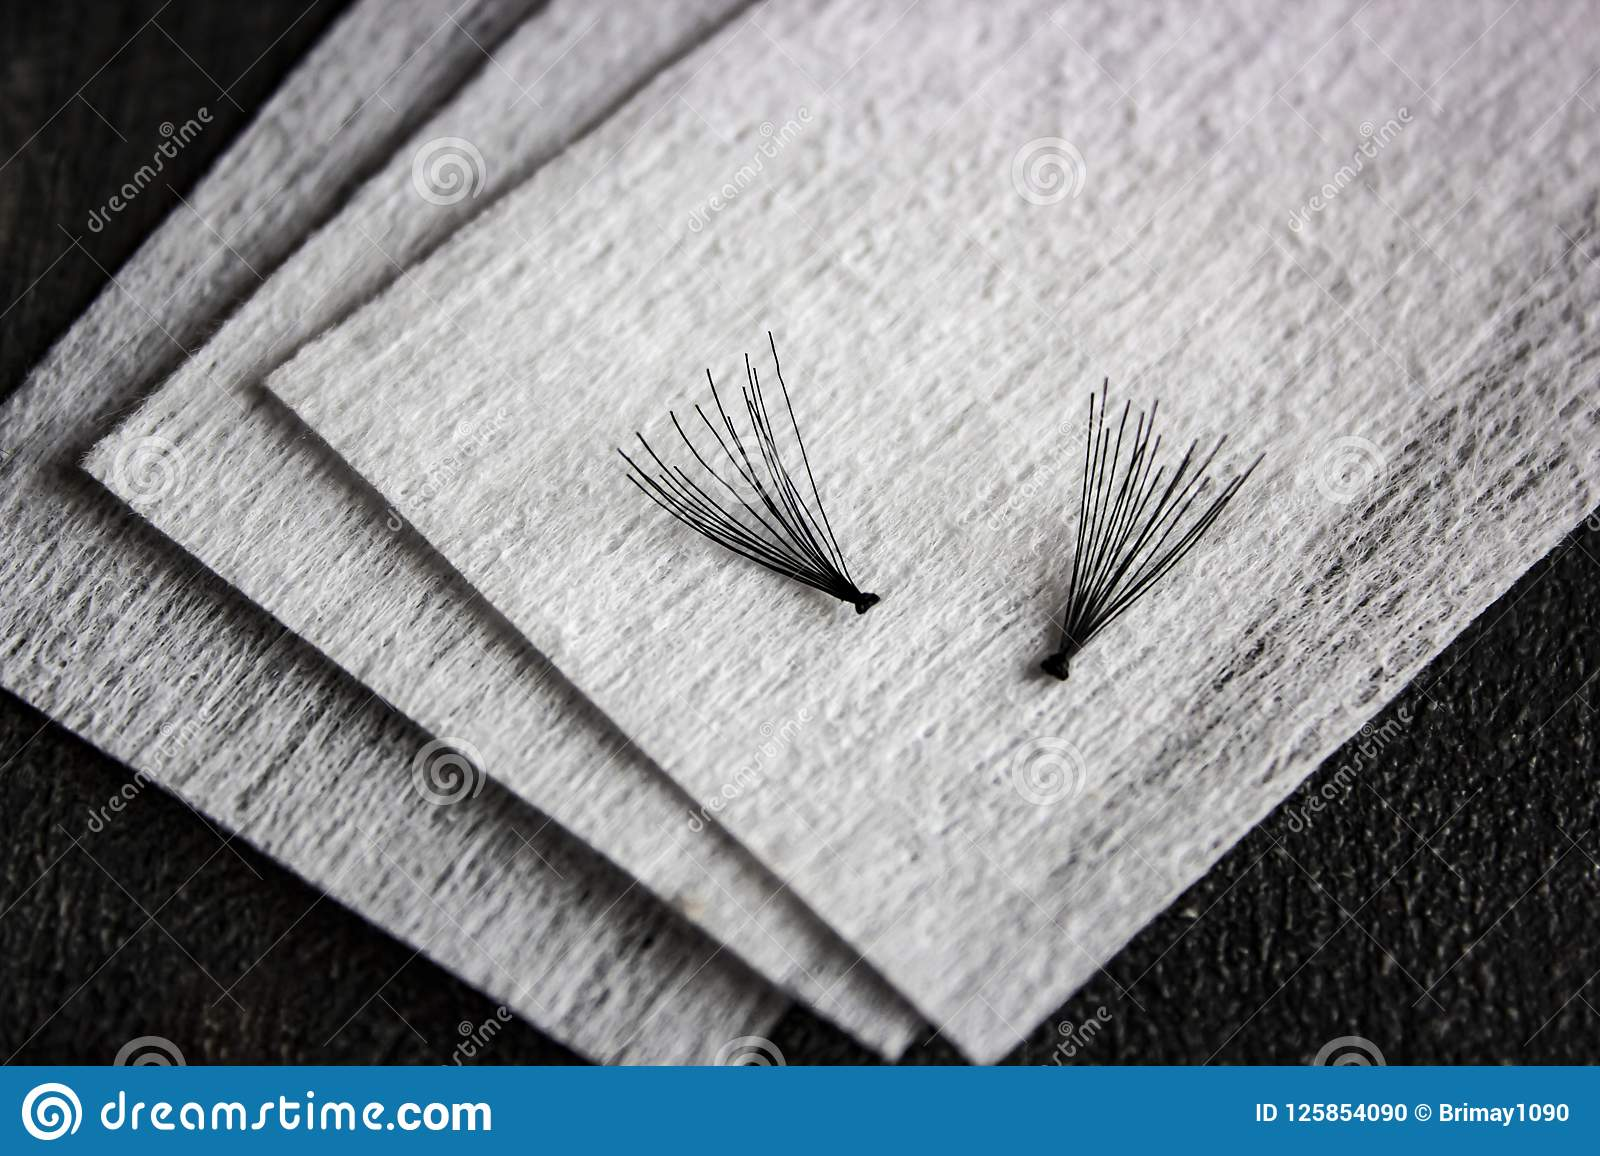 False black eyelashes on the clean cotton